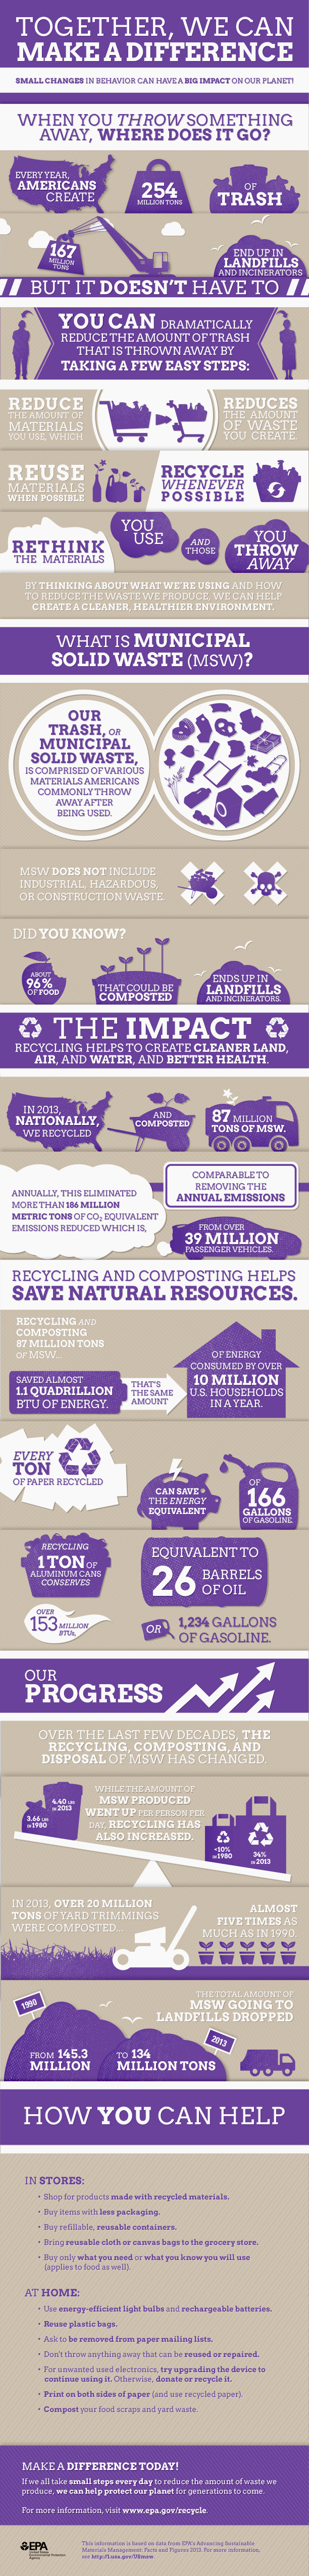 EPA Waste Infographic